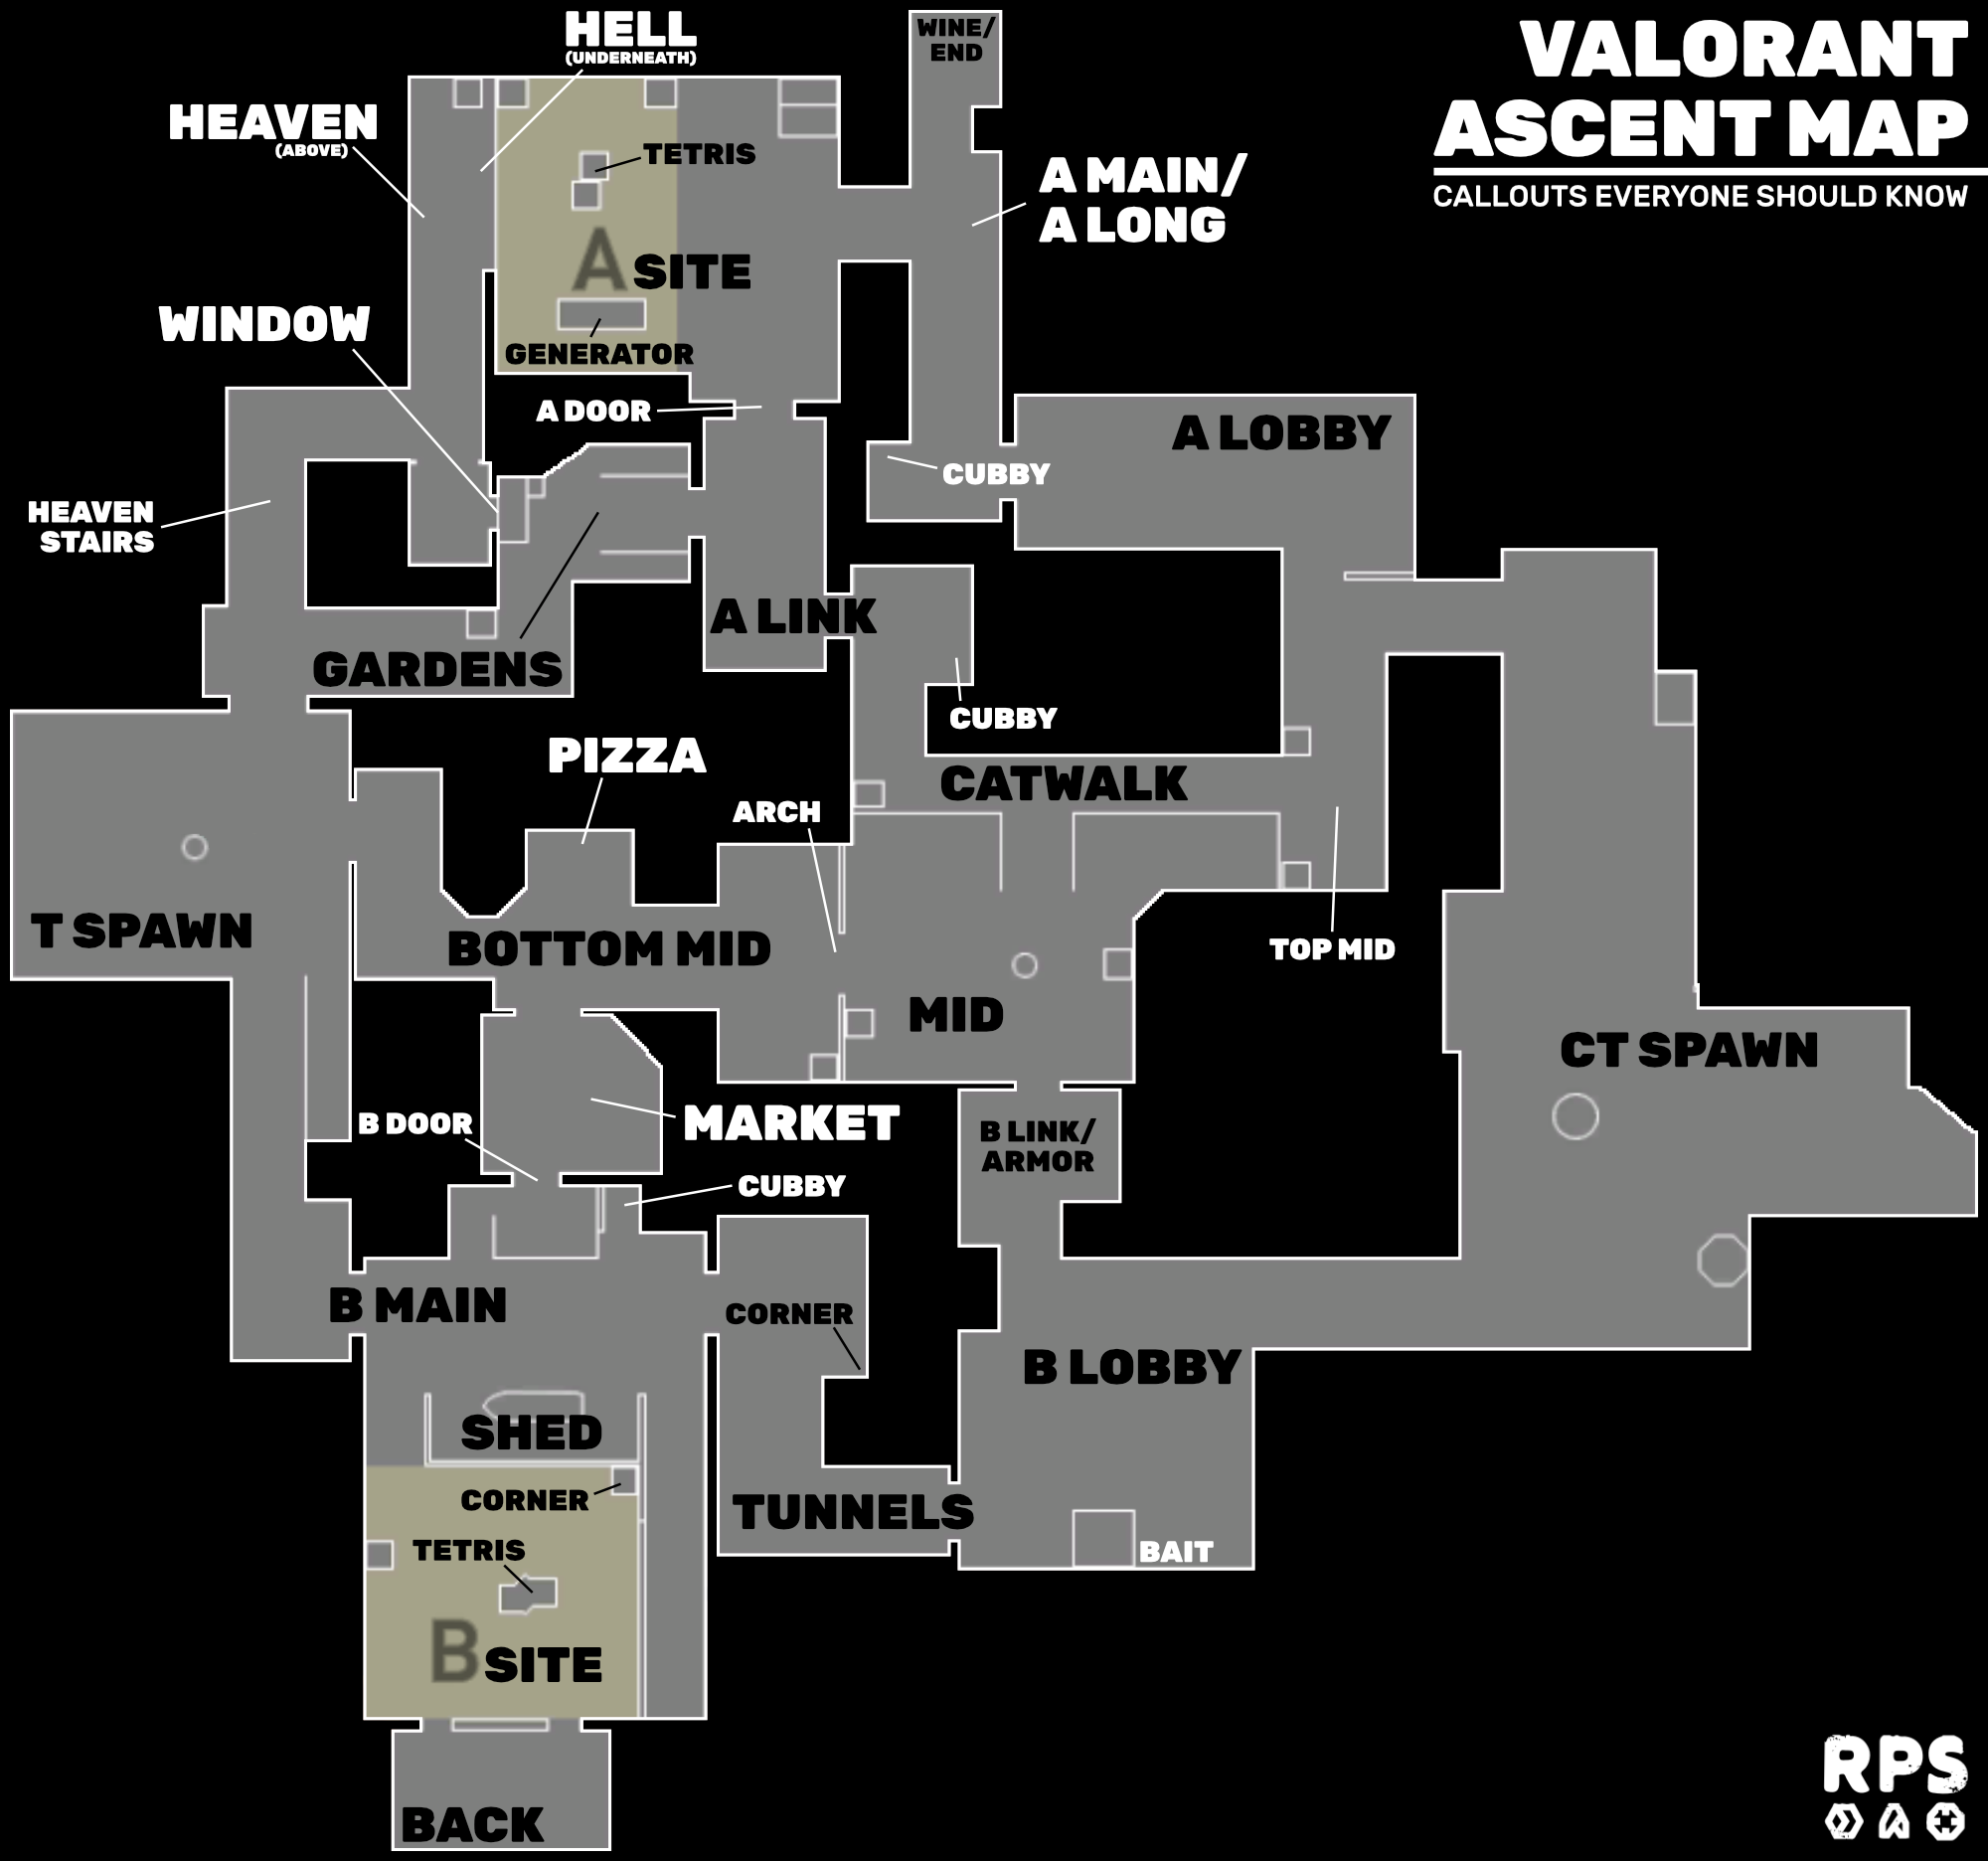 Valorant Ascent callouts